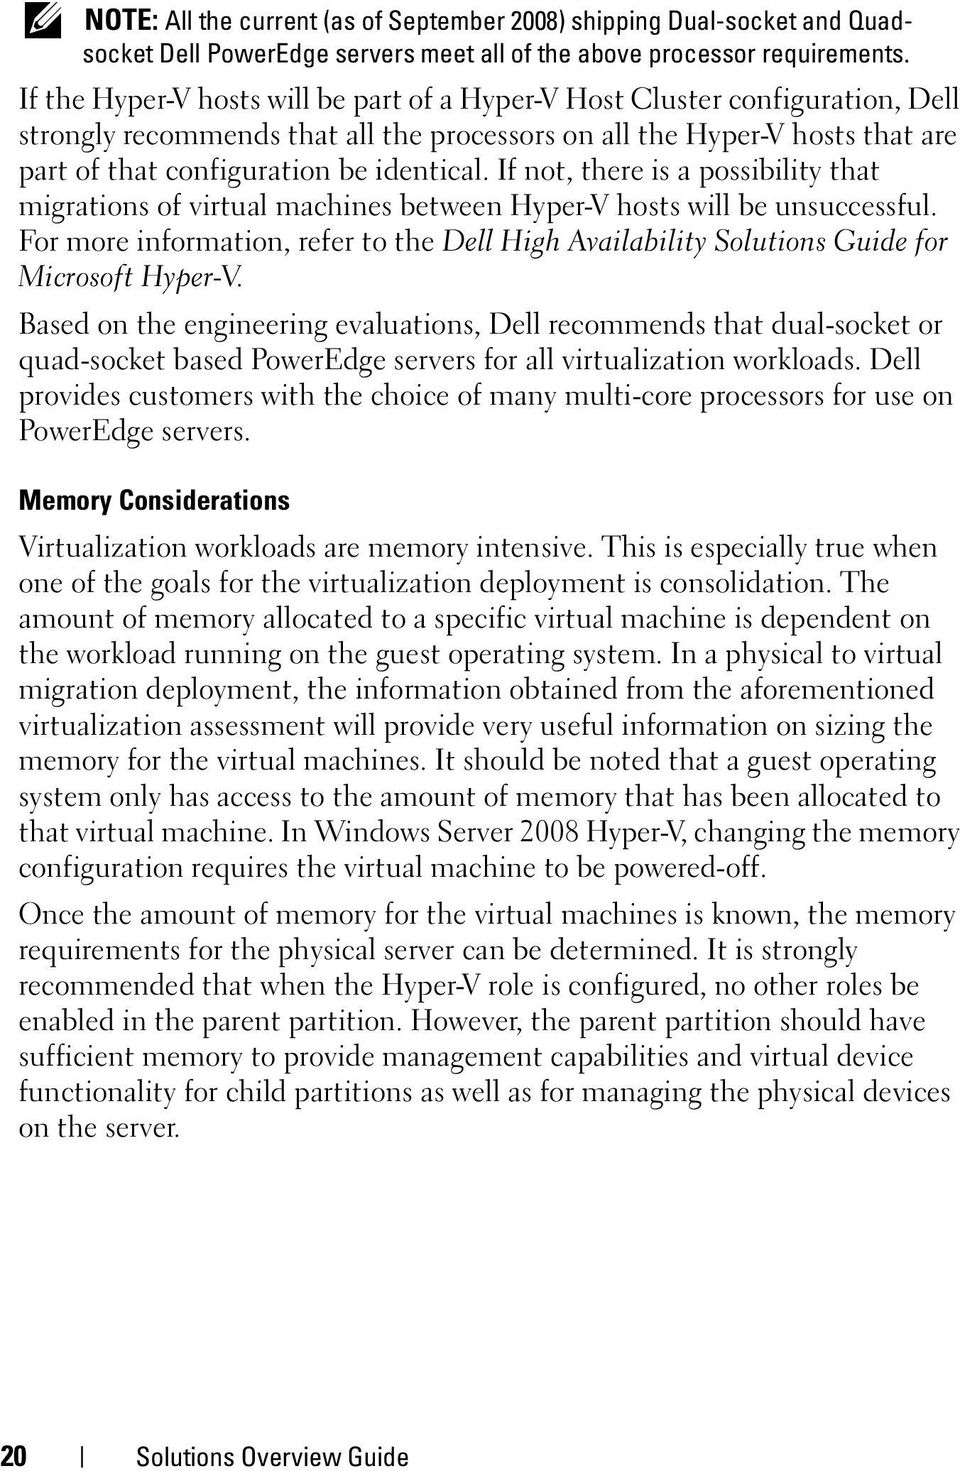 If not, there is a possibility that migrations of virtual machines between Hyper-V hosts will be unsuccessful.